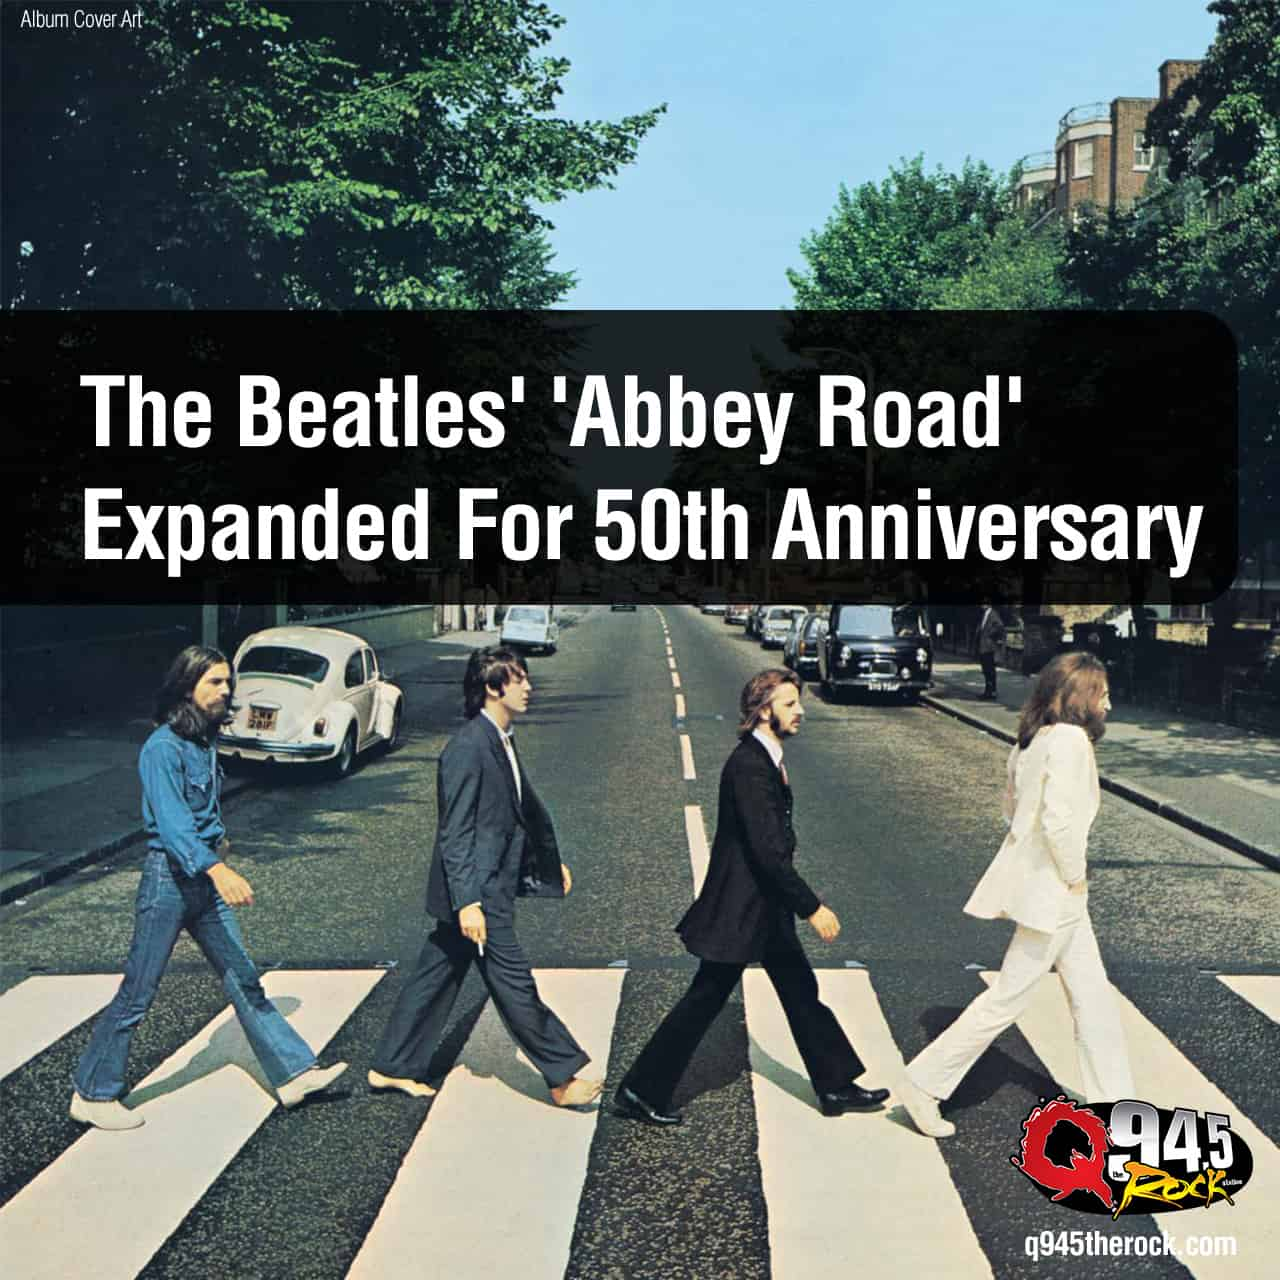 The Beatles' 'Abbey Road' Expanded For 50th Anniversary